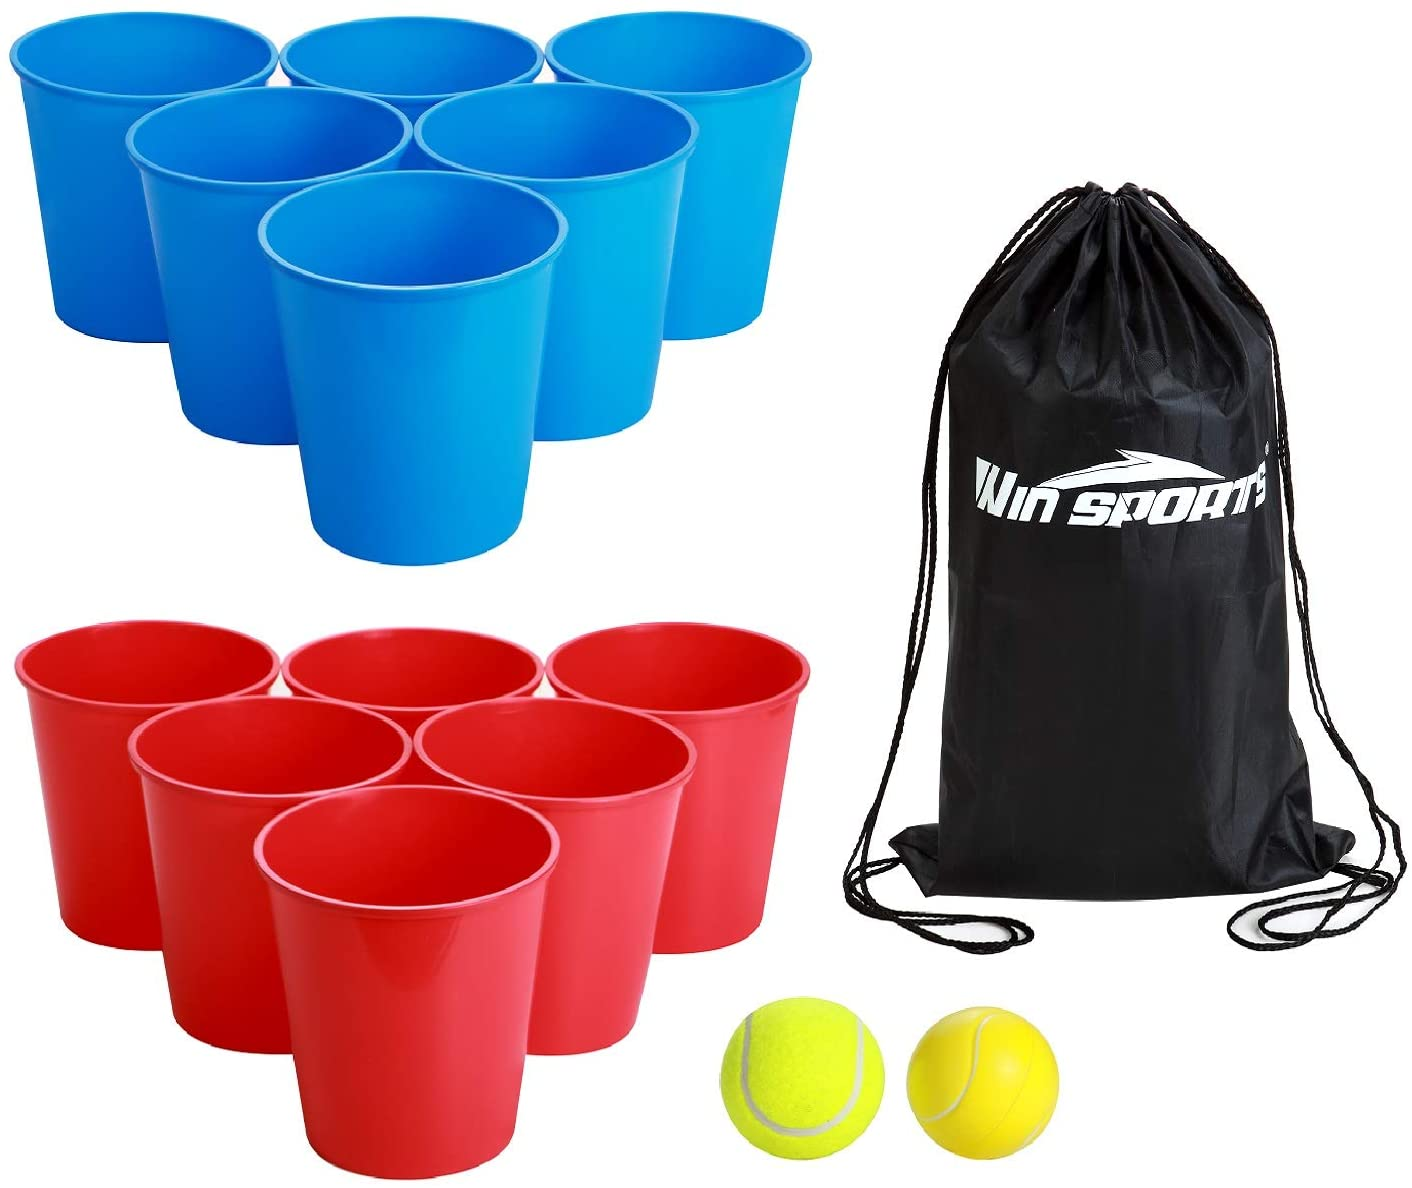 WIn SPORTS Giant Yard Pong Bucket for Toss Mesa Mall New product! New type Bea Game - Set